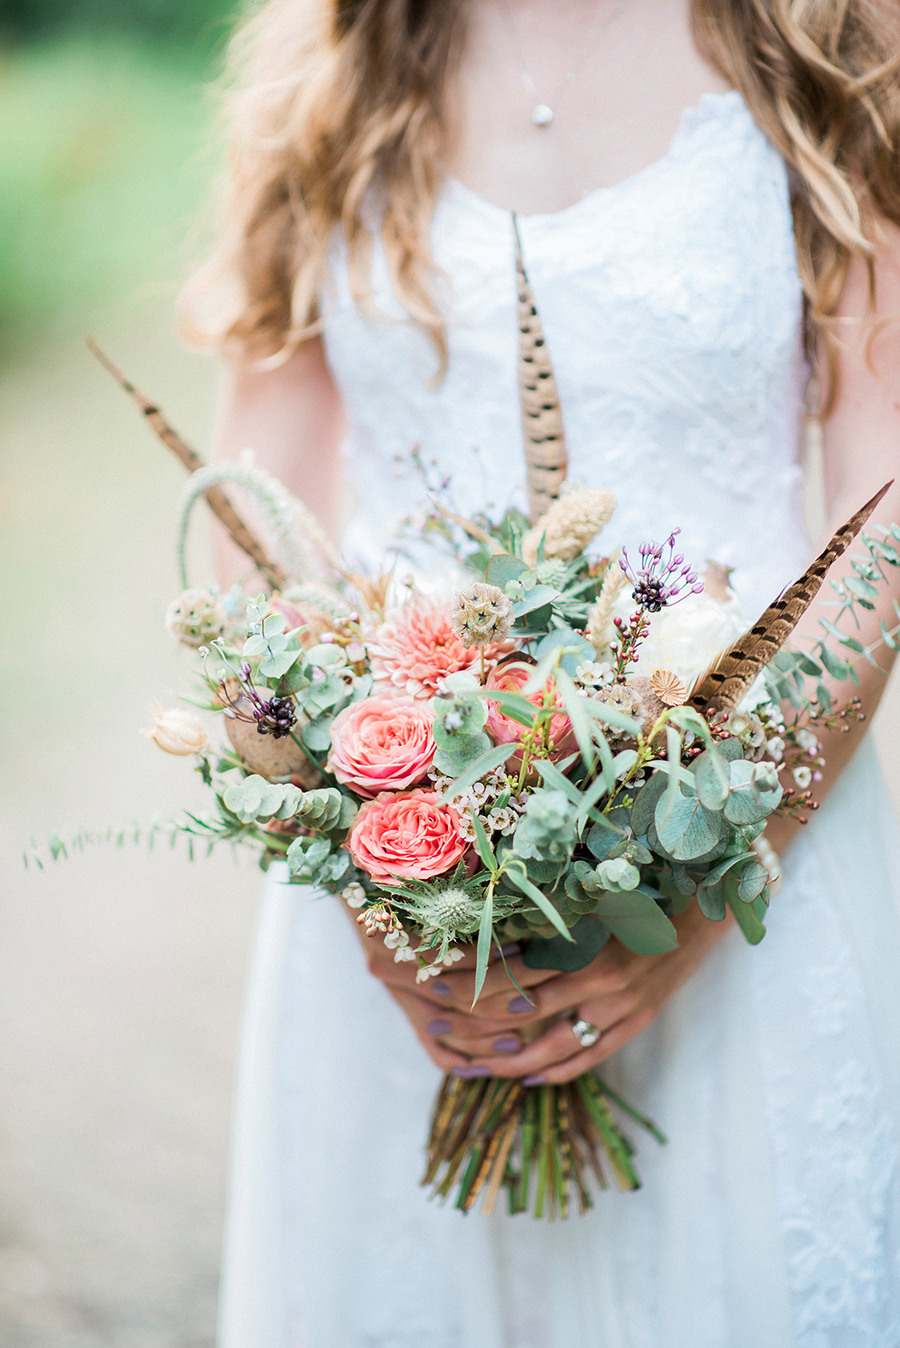 Dreamy boho wedding at Houchins Farm with images by Kathryn Hopkins Photography (43)